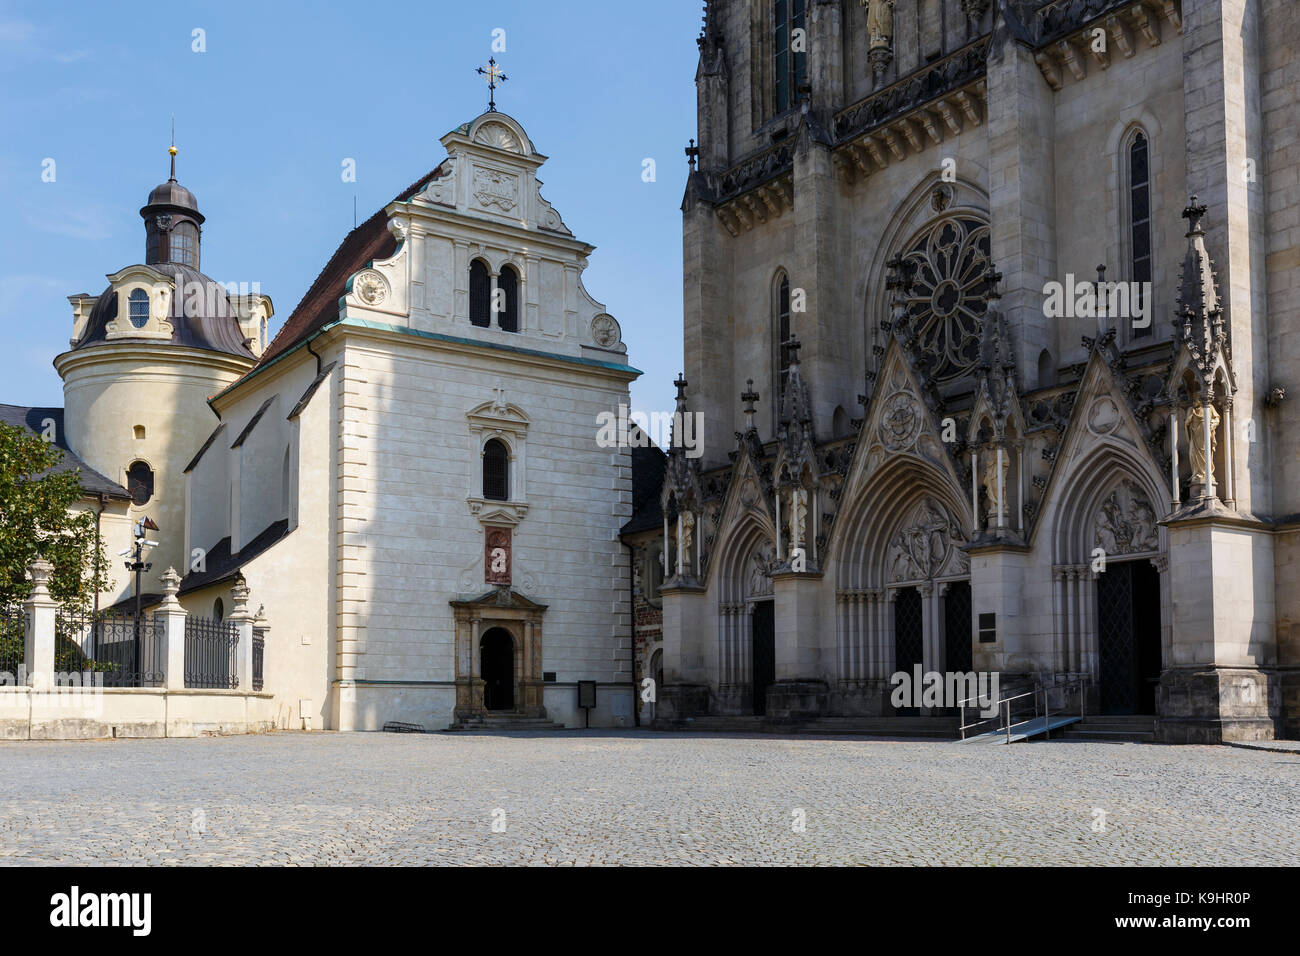 Gothic cathedral in the old town of Olomouc. - Stock Image